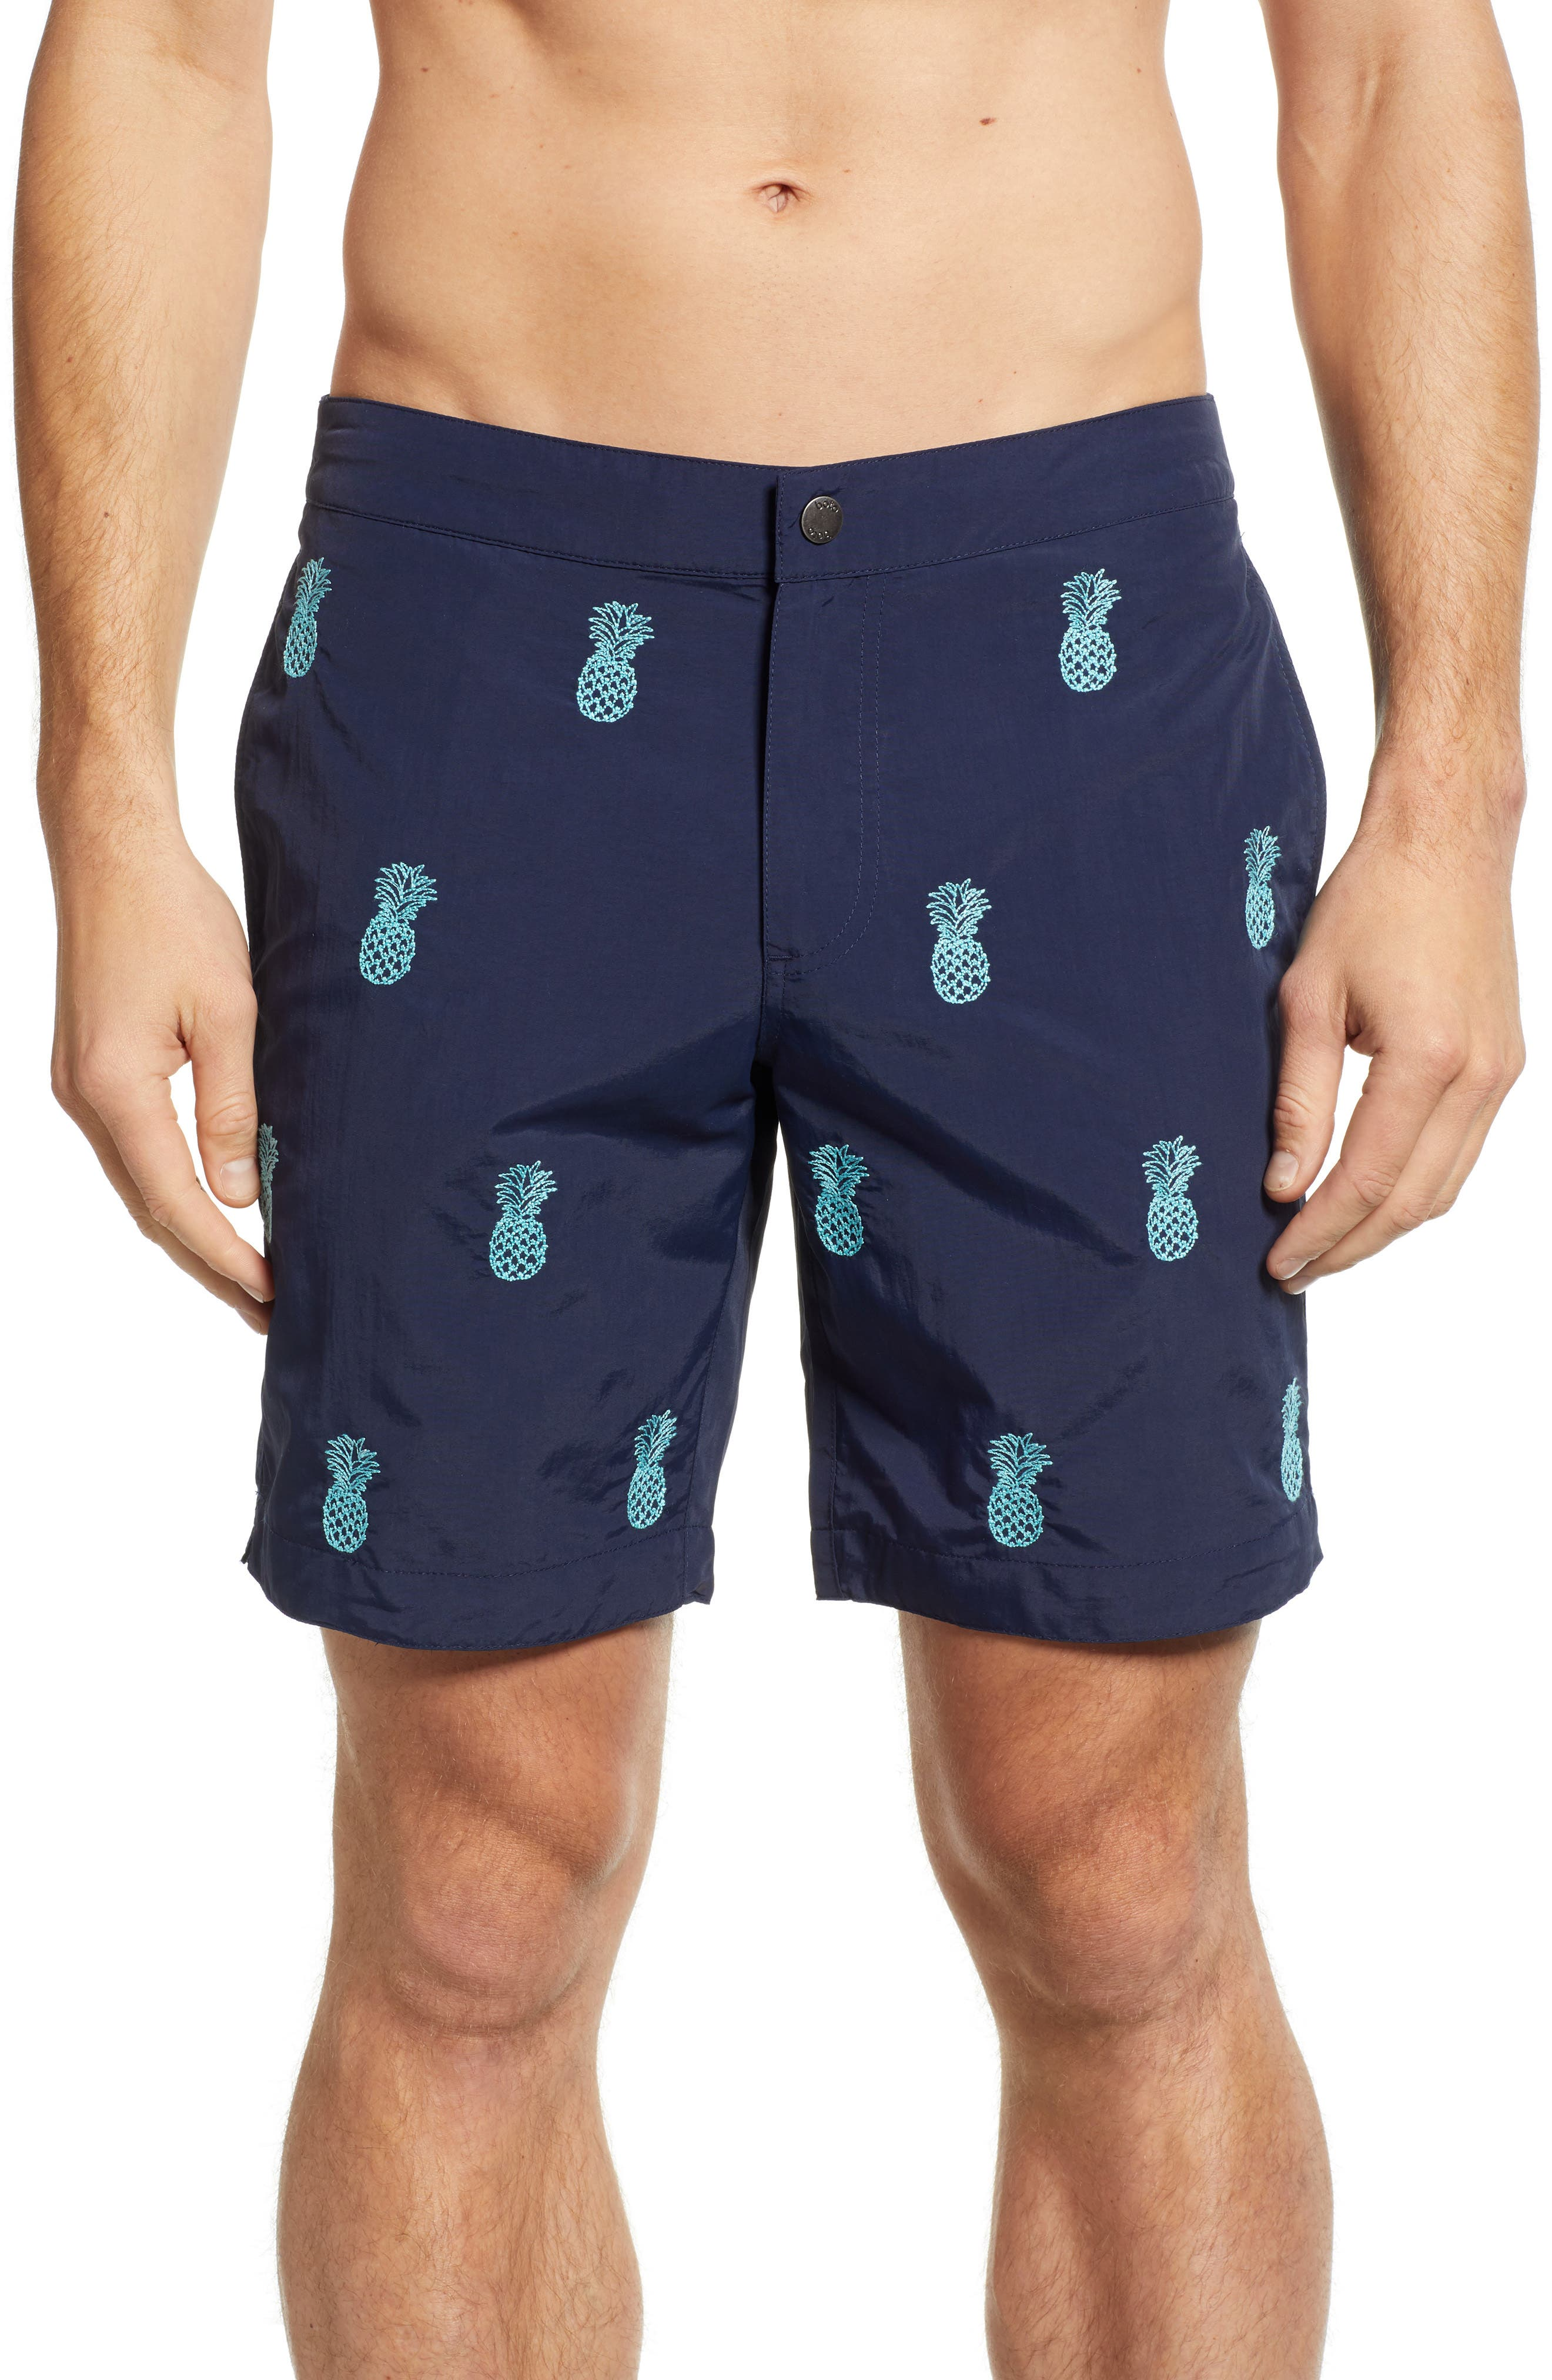 Aruba Embroidered 8.5 Inch Swim Trunks,                             Main thumbnail 1, color,                             NAVY EMBROIDERED PINEAPPLES